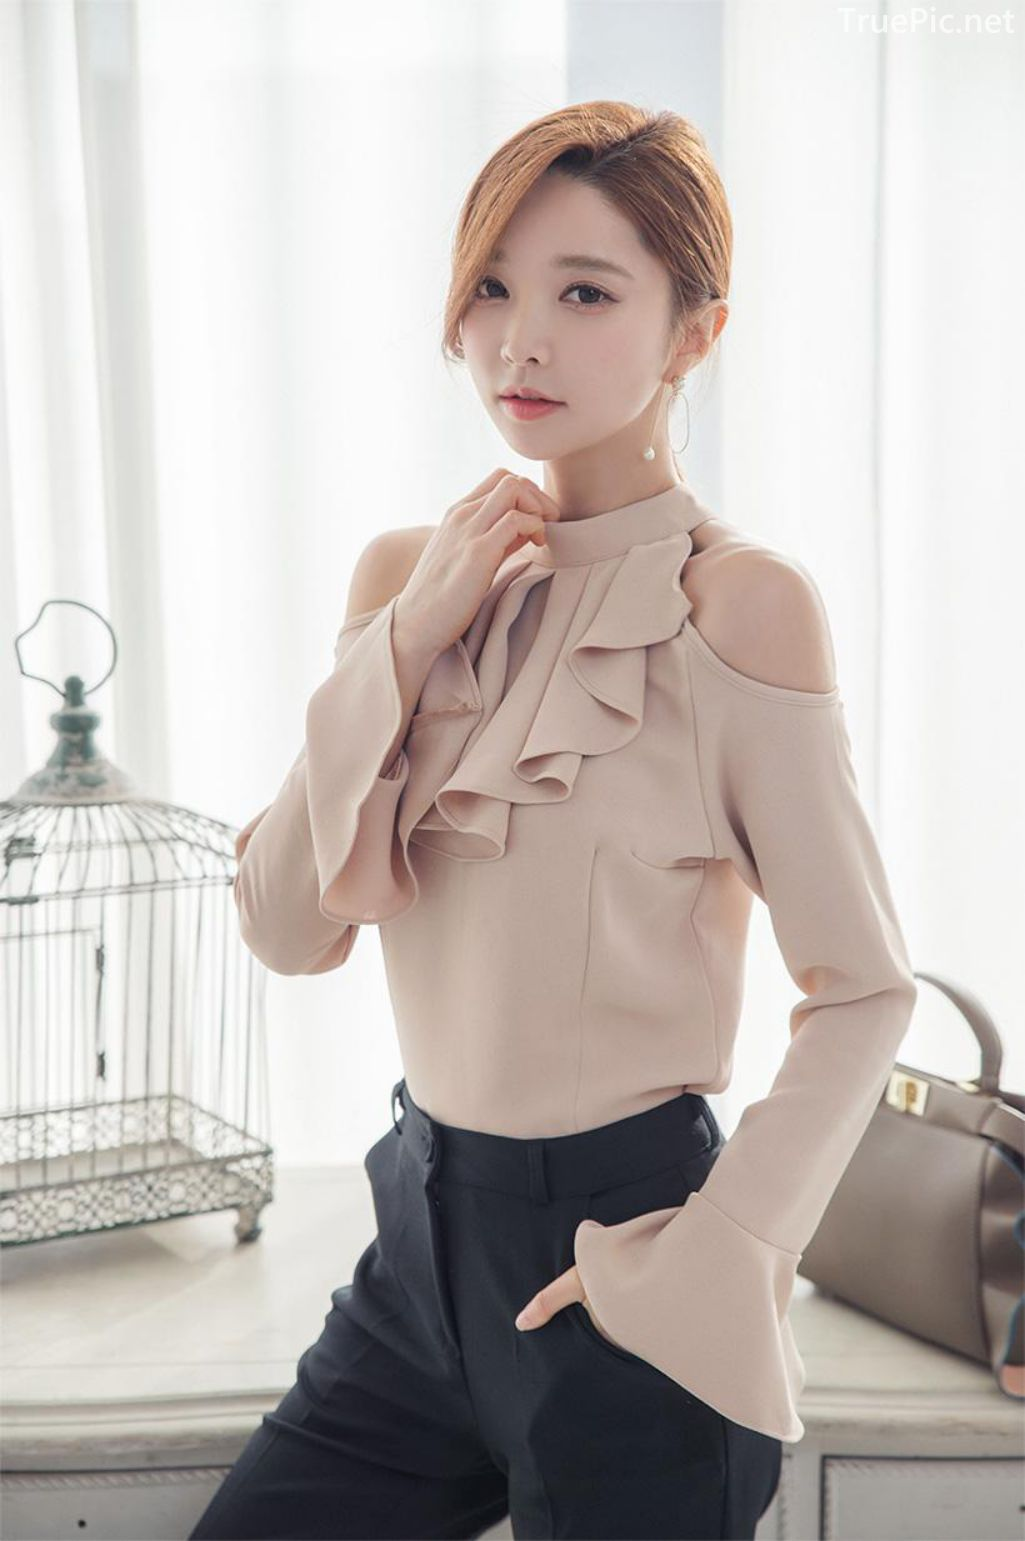 Korean-Hot-Fashion-Model-Park-Soo-Yeon-7-Outfit-sets-for-a-week-TruePic.net- Picture-10